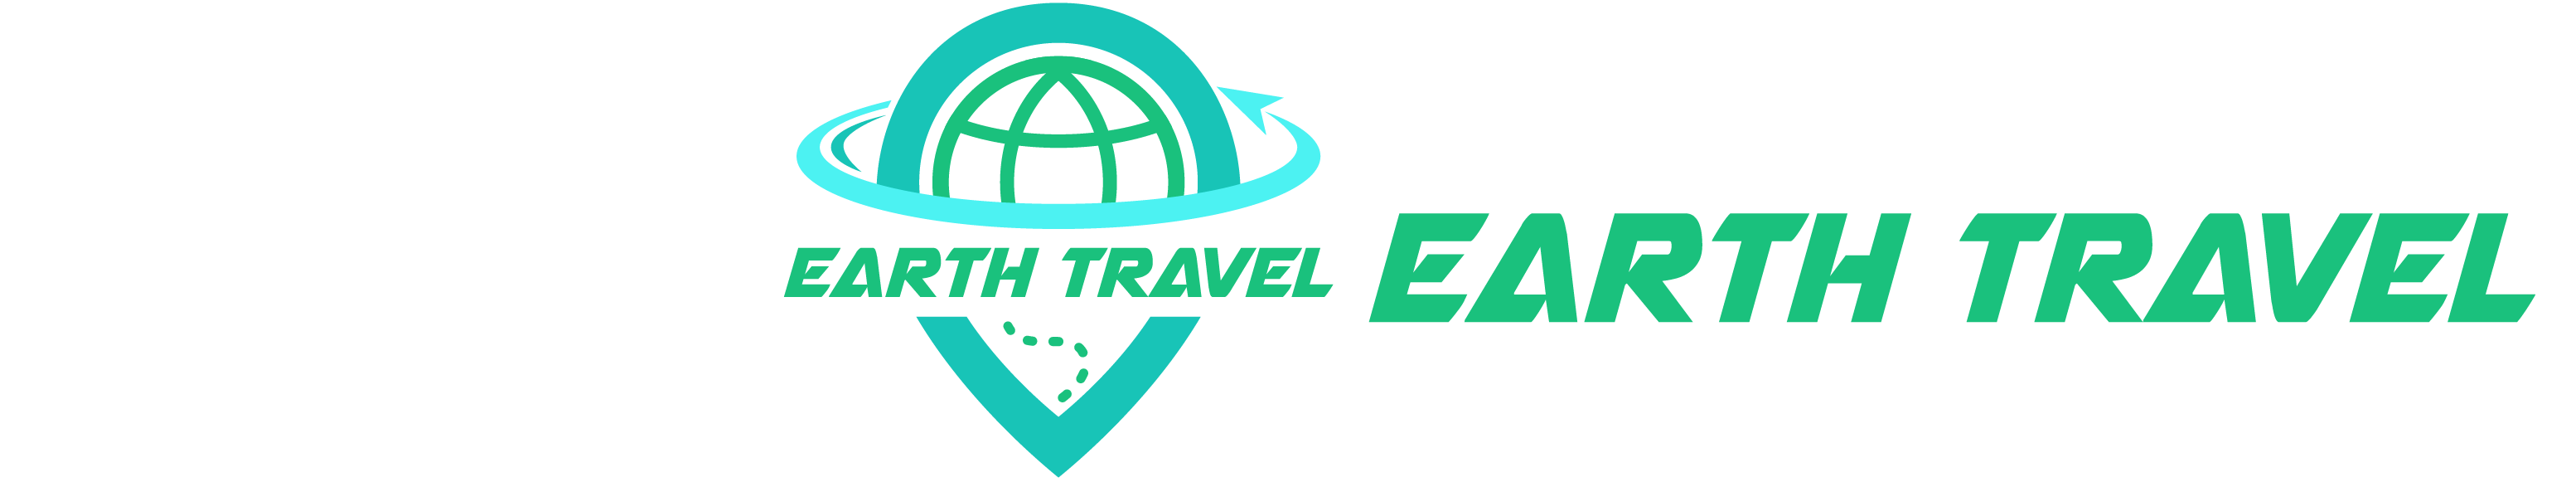 EarthTravel - Best Prices for Hotels, Flights and Rentals!